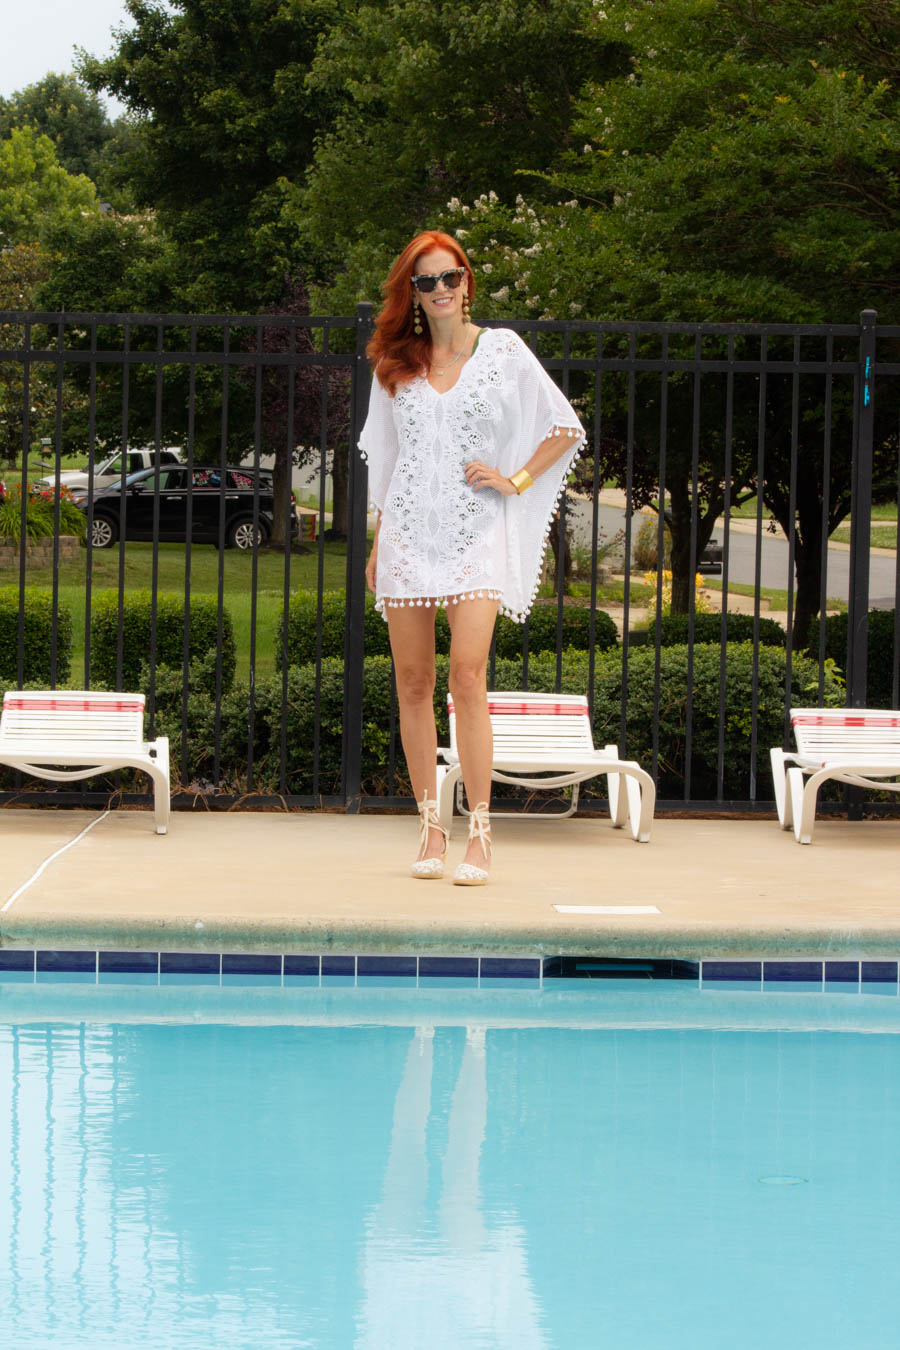 Swimspot green one piece bathing suit and crochet coverup